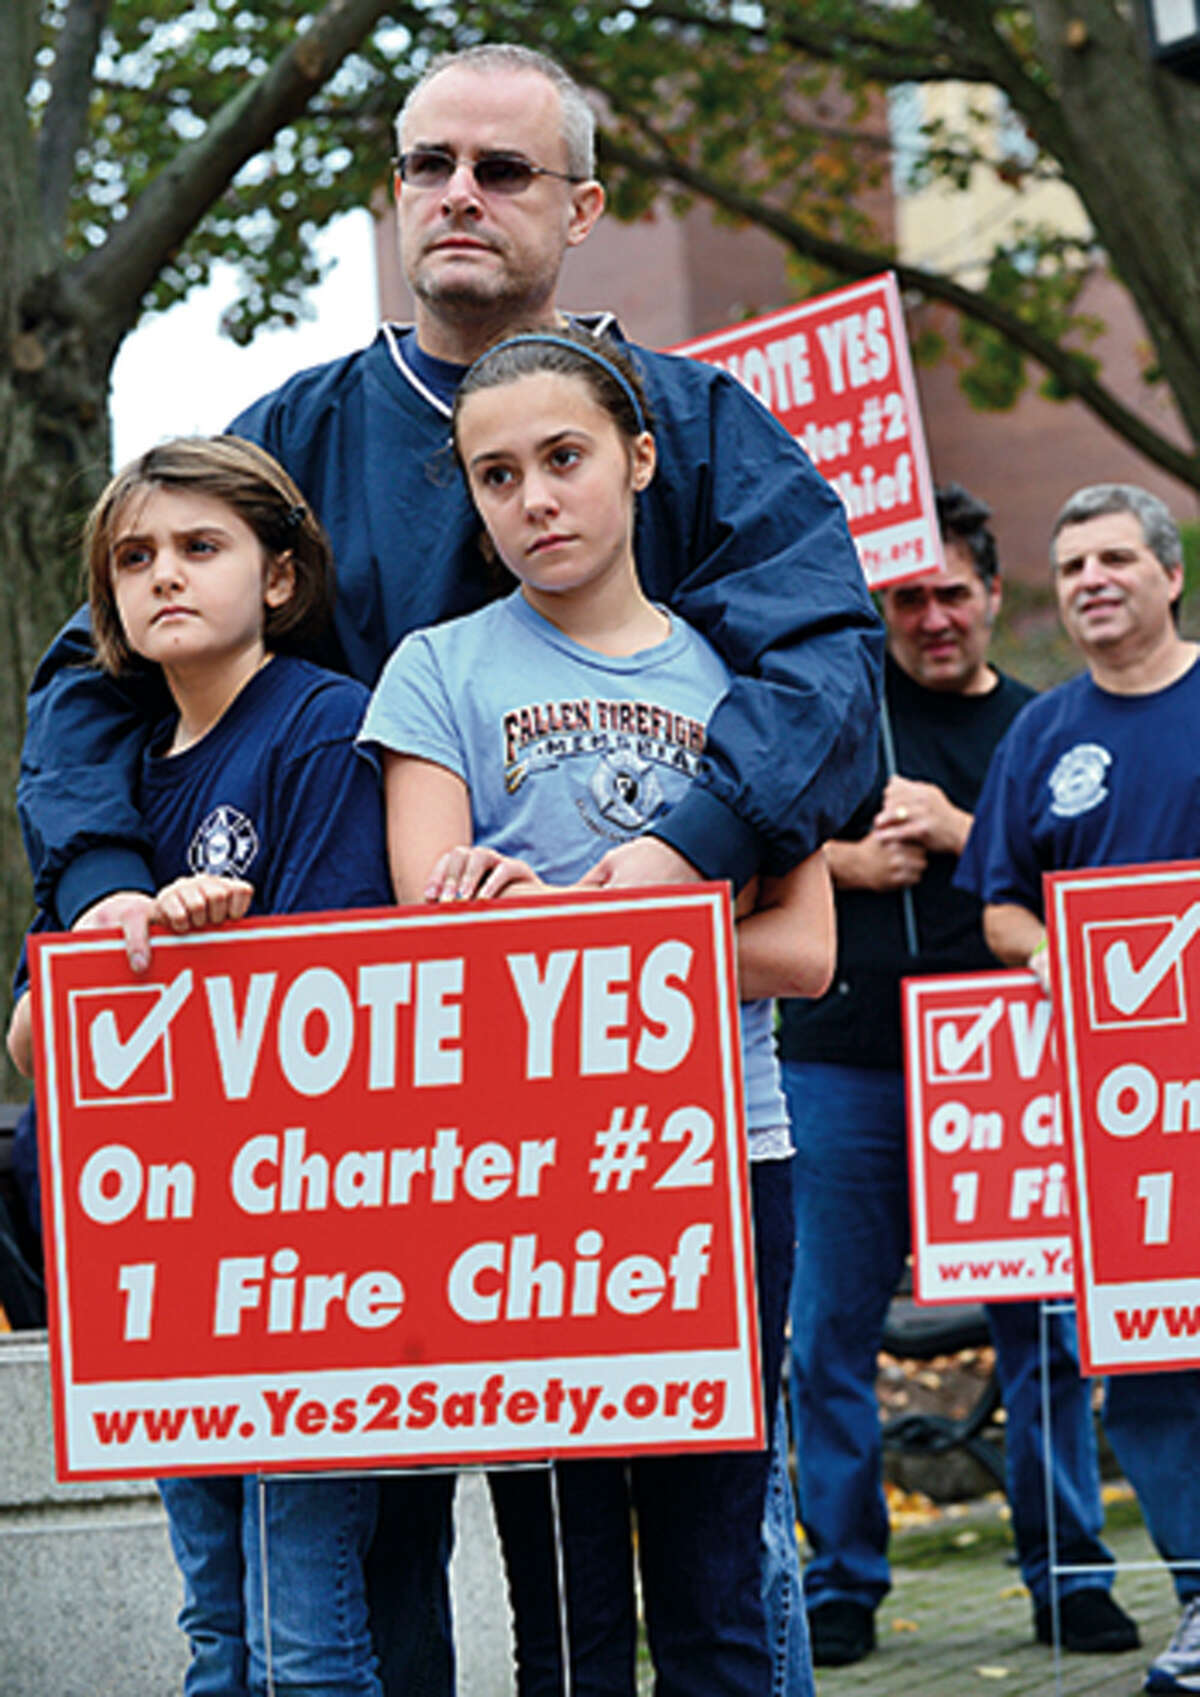 Members of the Stamford Professional Fire Fighters Association including Stamford firefghter, Keith Chichester and his daughters, Samantha and Lia, rally across the street from Stamford Fire & Rescue Headquarters Saturday in an effort to urge Stamford voters to vote yes for the passage of Charter Question 2 which would create the position of a single chief for the entire city. Hour photo / Erik Trautmann